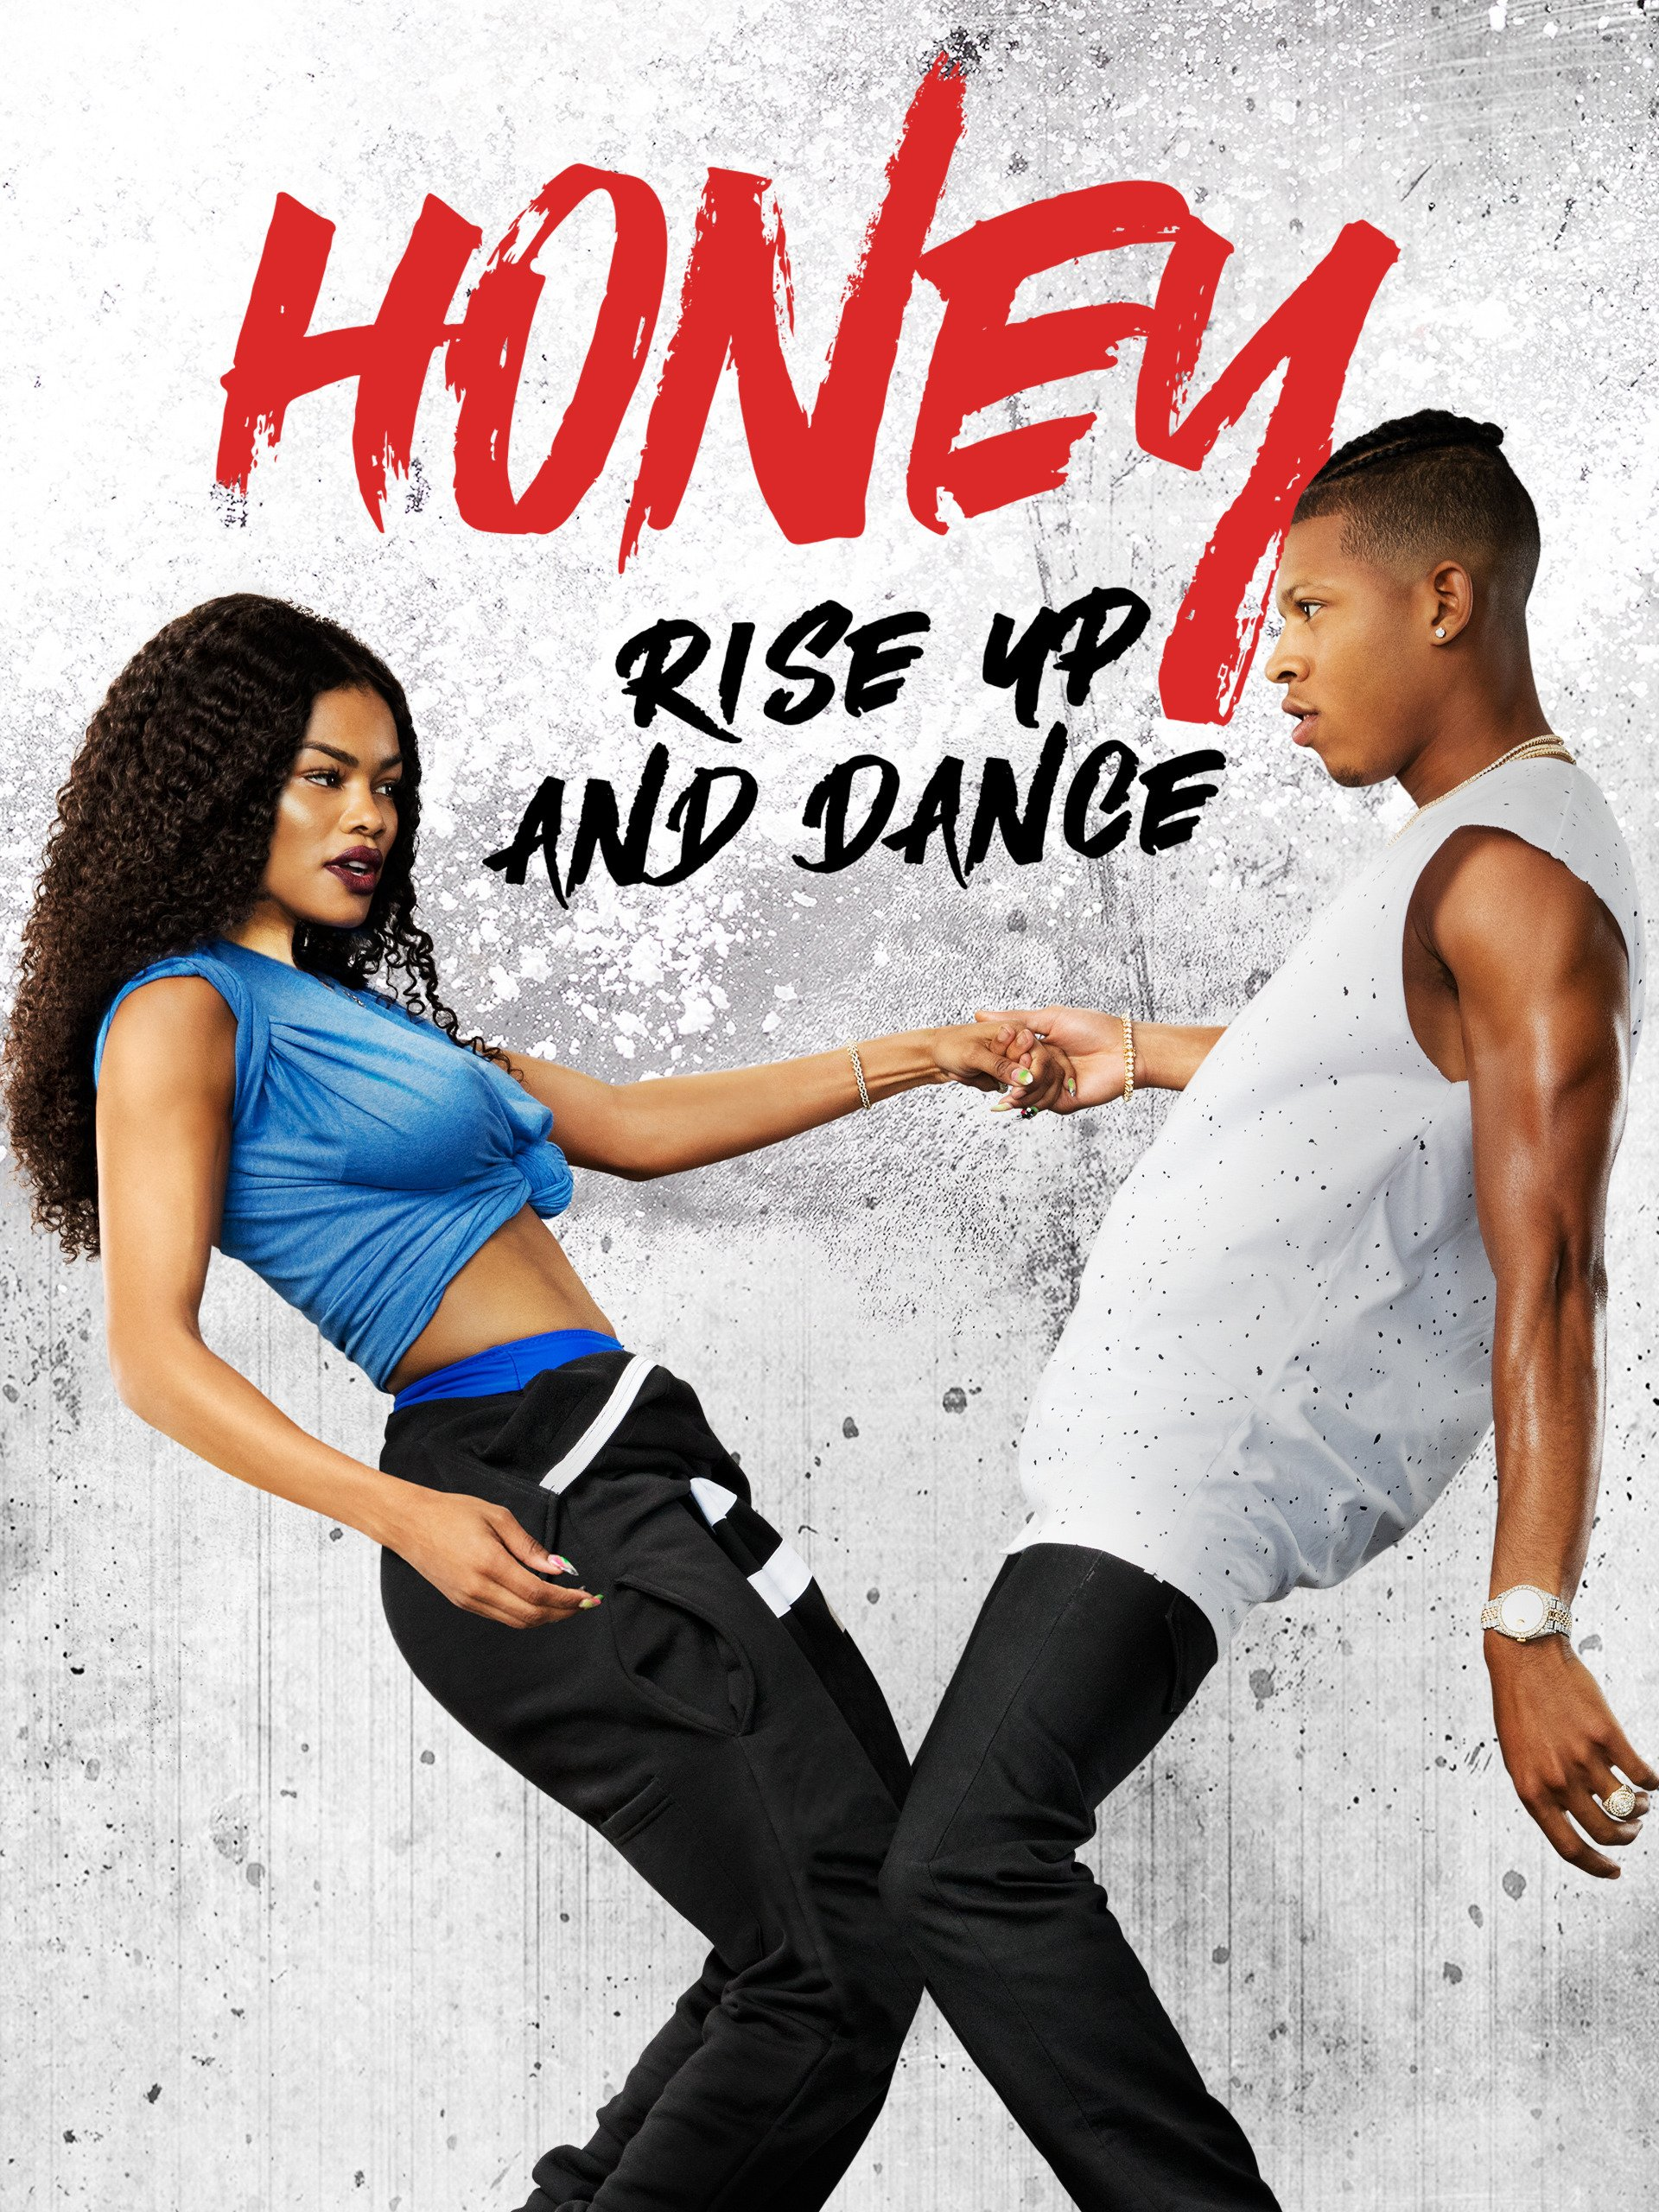 (2018) An aspiring street dancer competes for a university scholarship, but is discouraged by her family and boyfriend. Determined to prove them all wrong, she practices in Atlanta's underground dance scene to take her skills to the next level. -